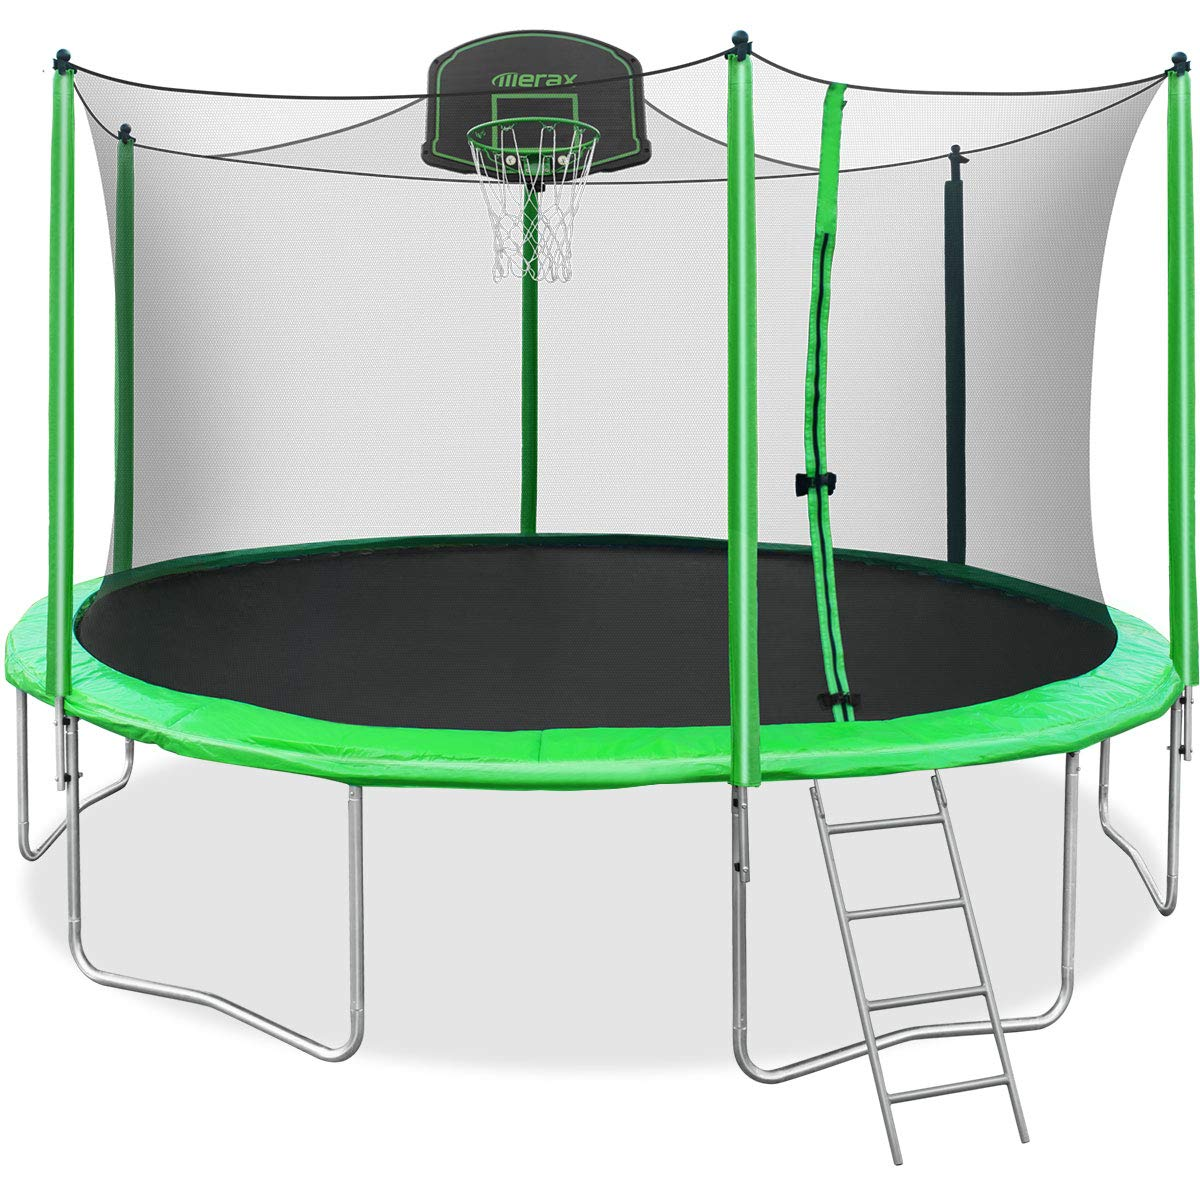 Merax 14FT Trampoline with Safety Enclosure Net, Basketball Hoop and Ladder, Trampoline for Kids (Green 14FT) by Merax